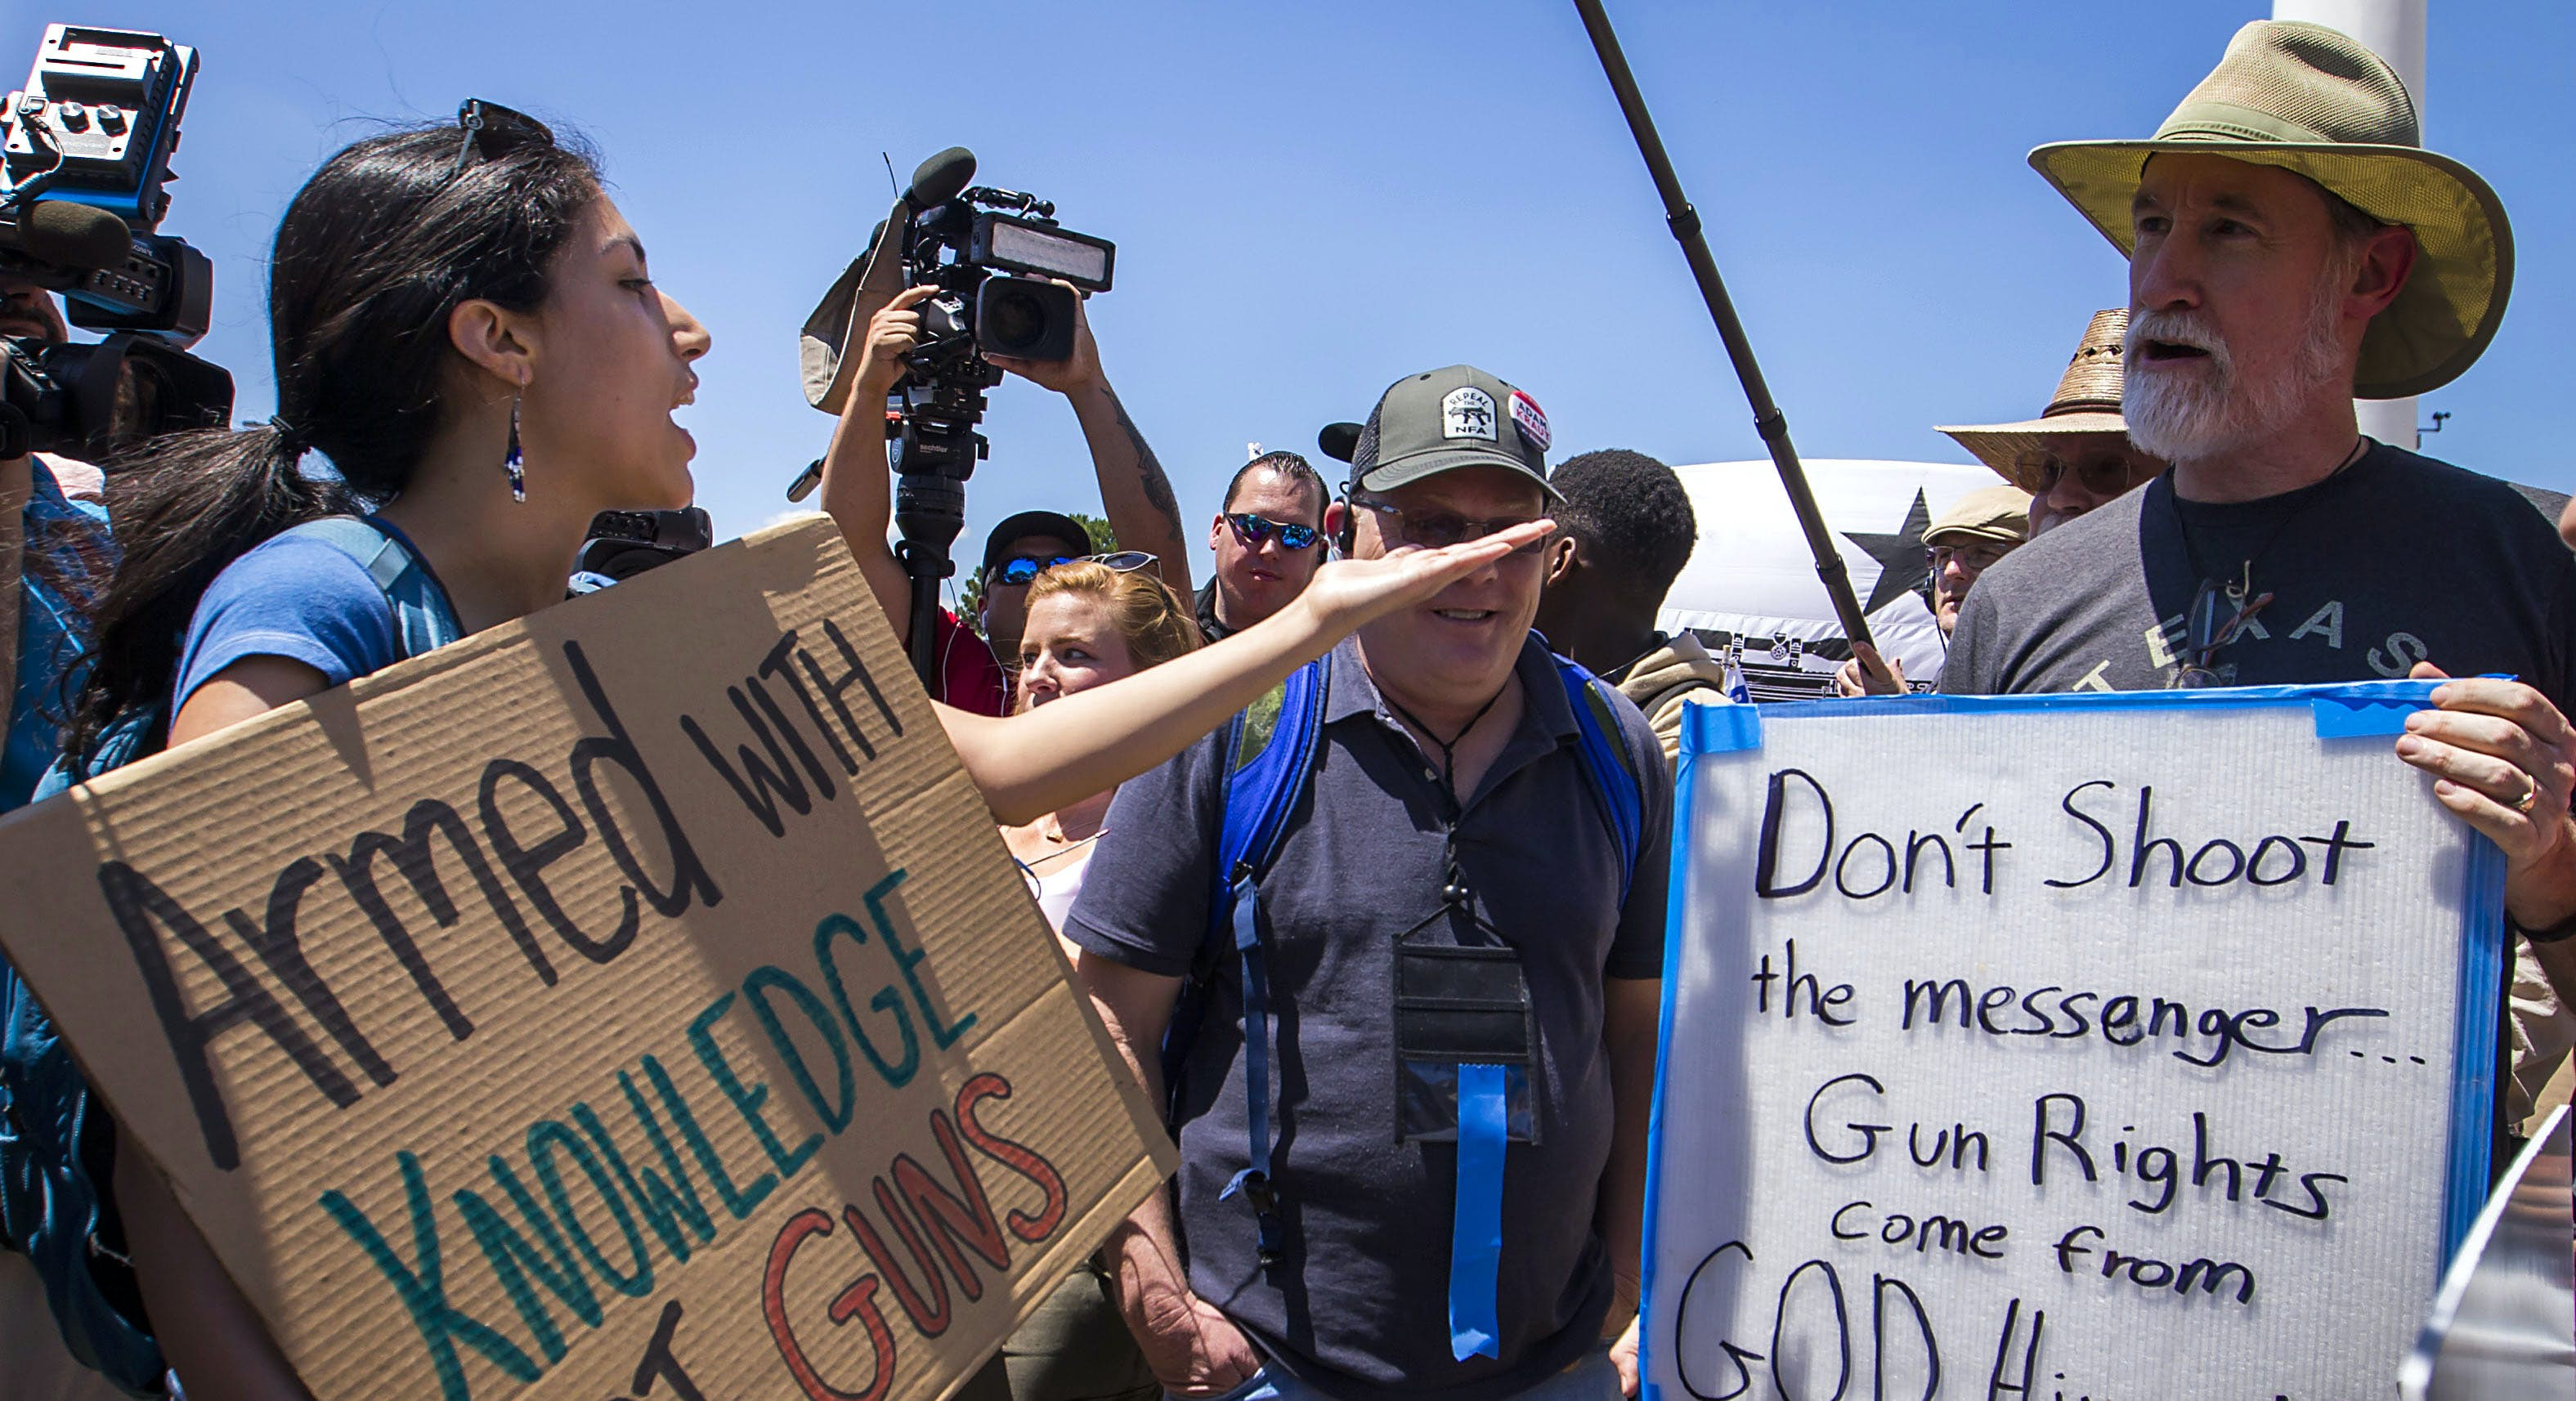 Gun control advocates face off with armed activists in ...